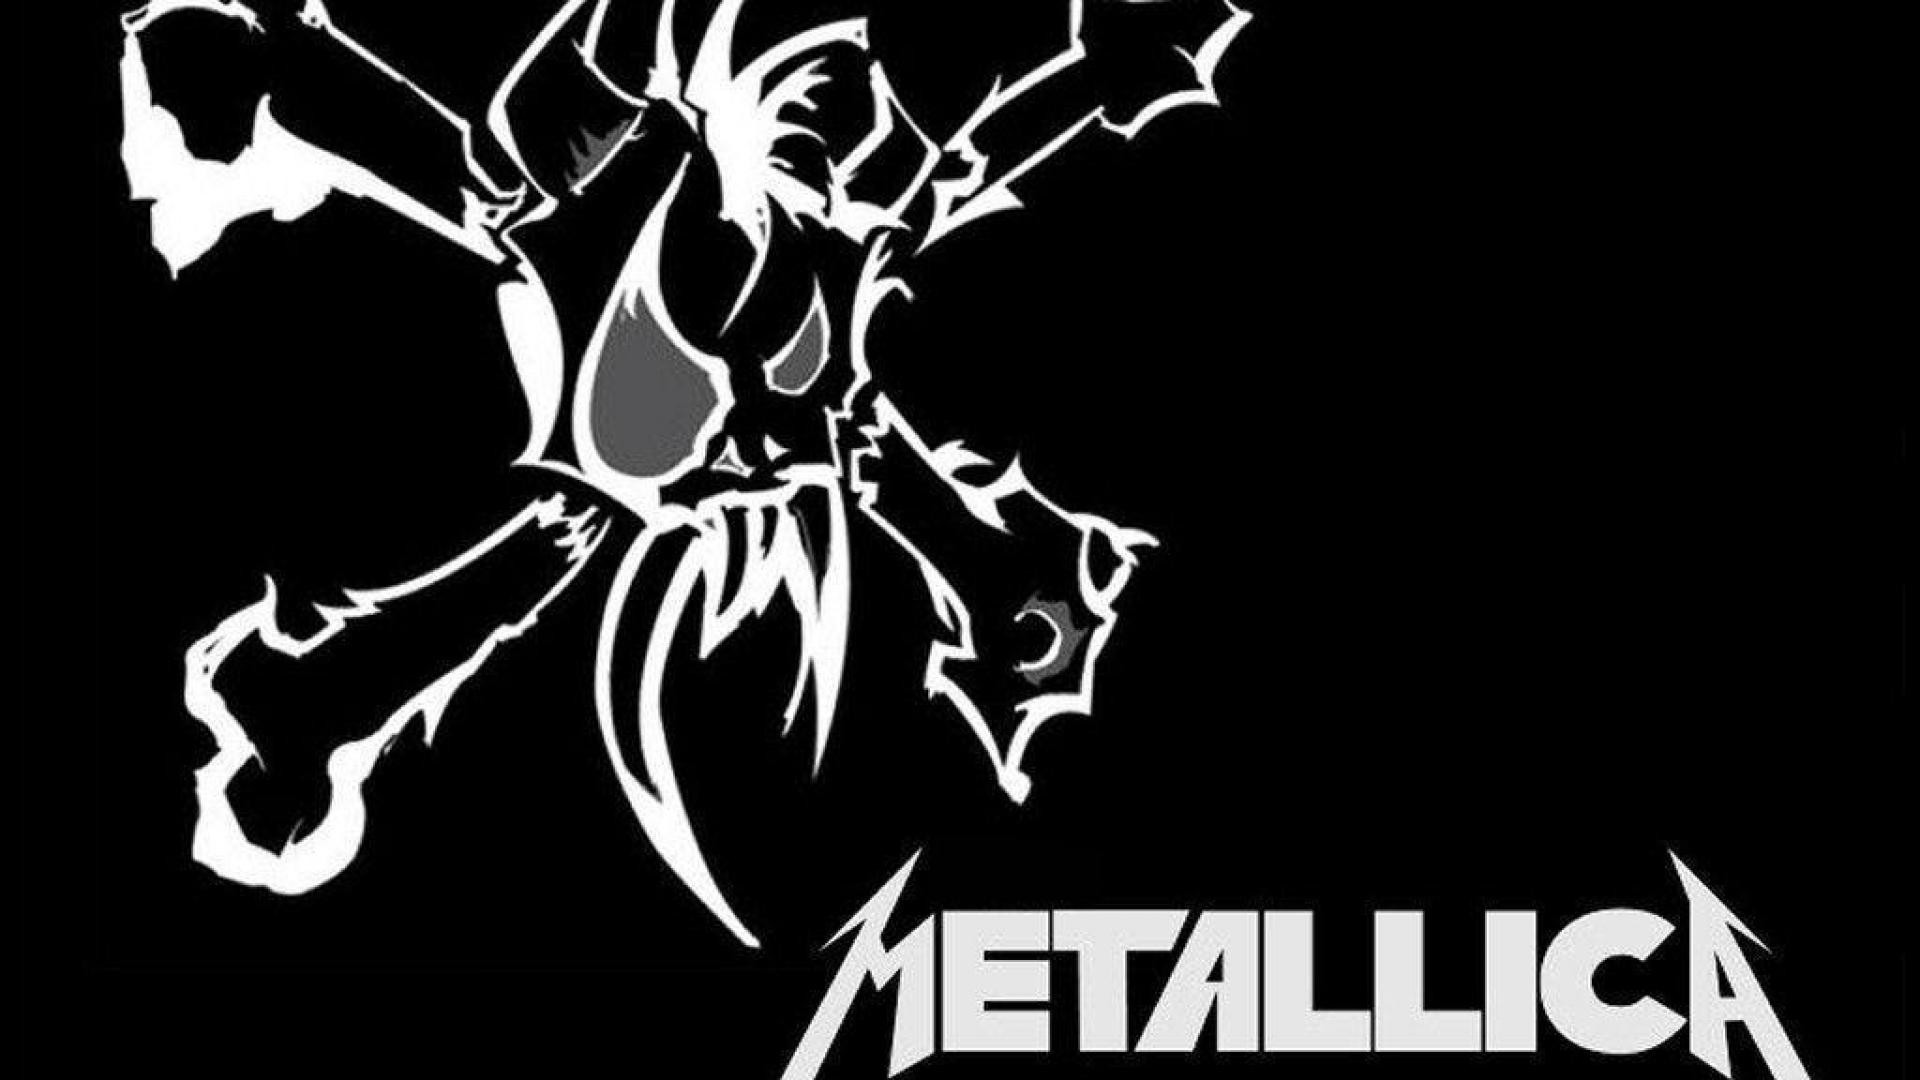 Fantastic Wallpaper High Resolution Metallica - 316157  Pic_15358.jpg